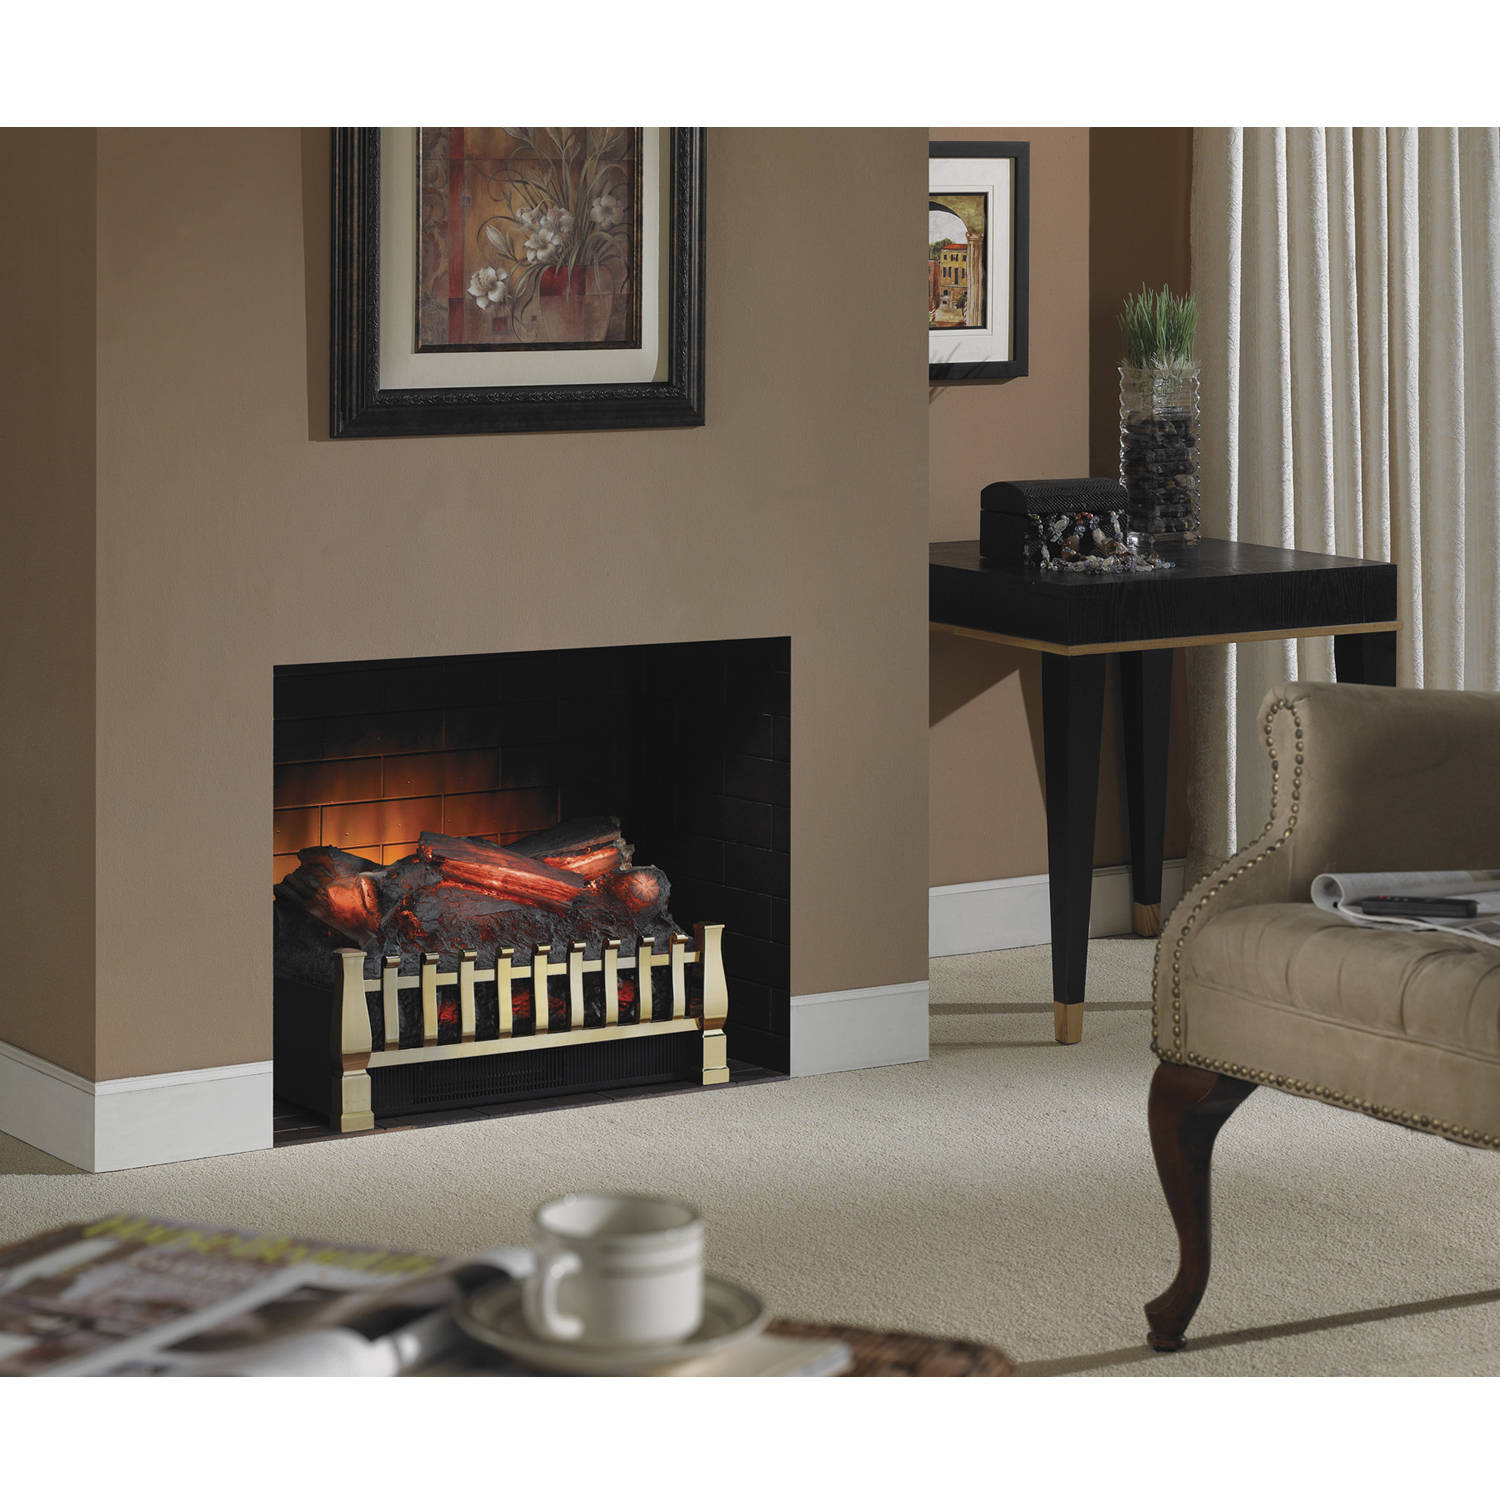 Free Shipping. Buy Duraflame Duraflame/Log Sets at Walmart.com